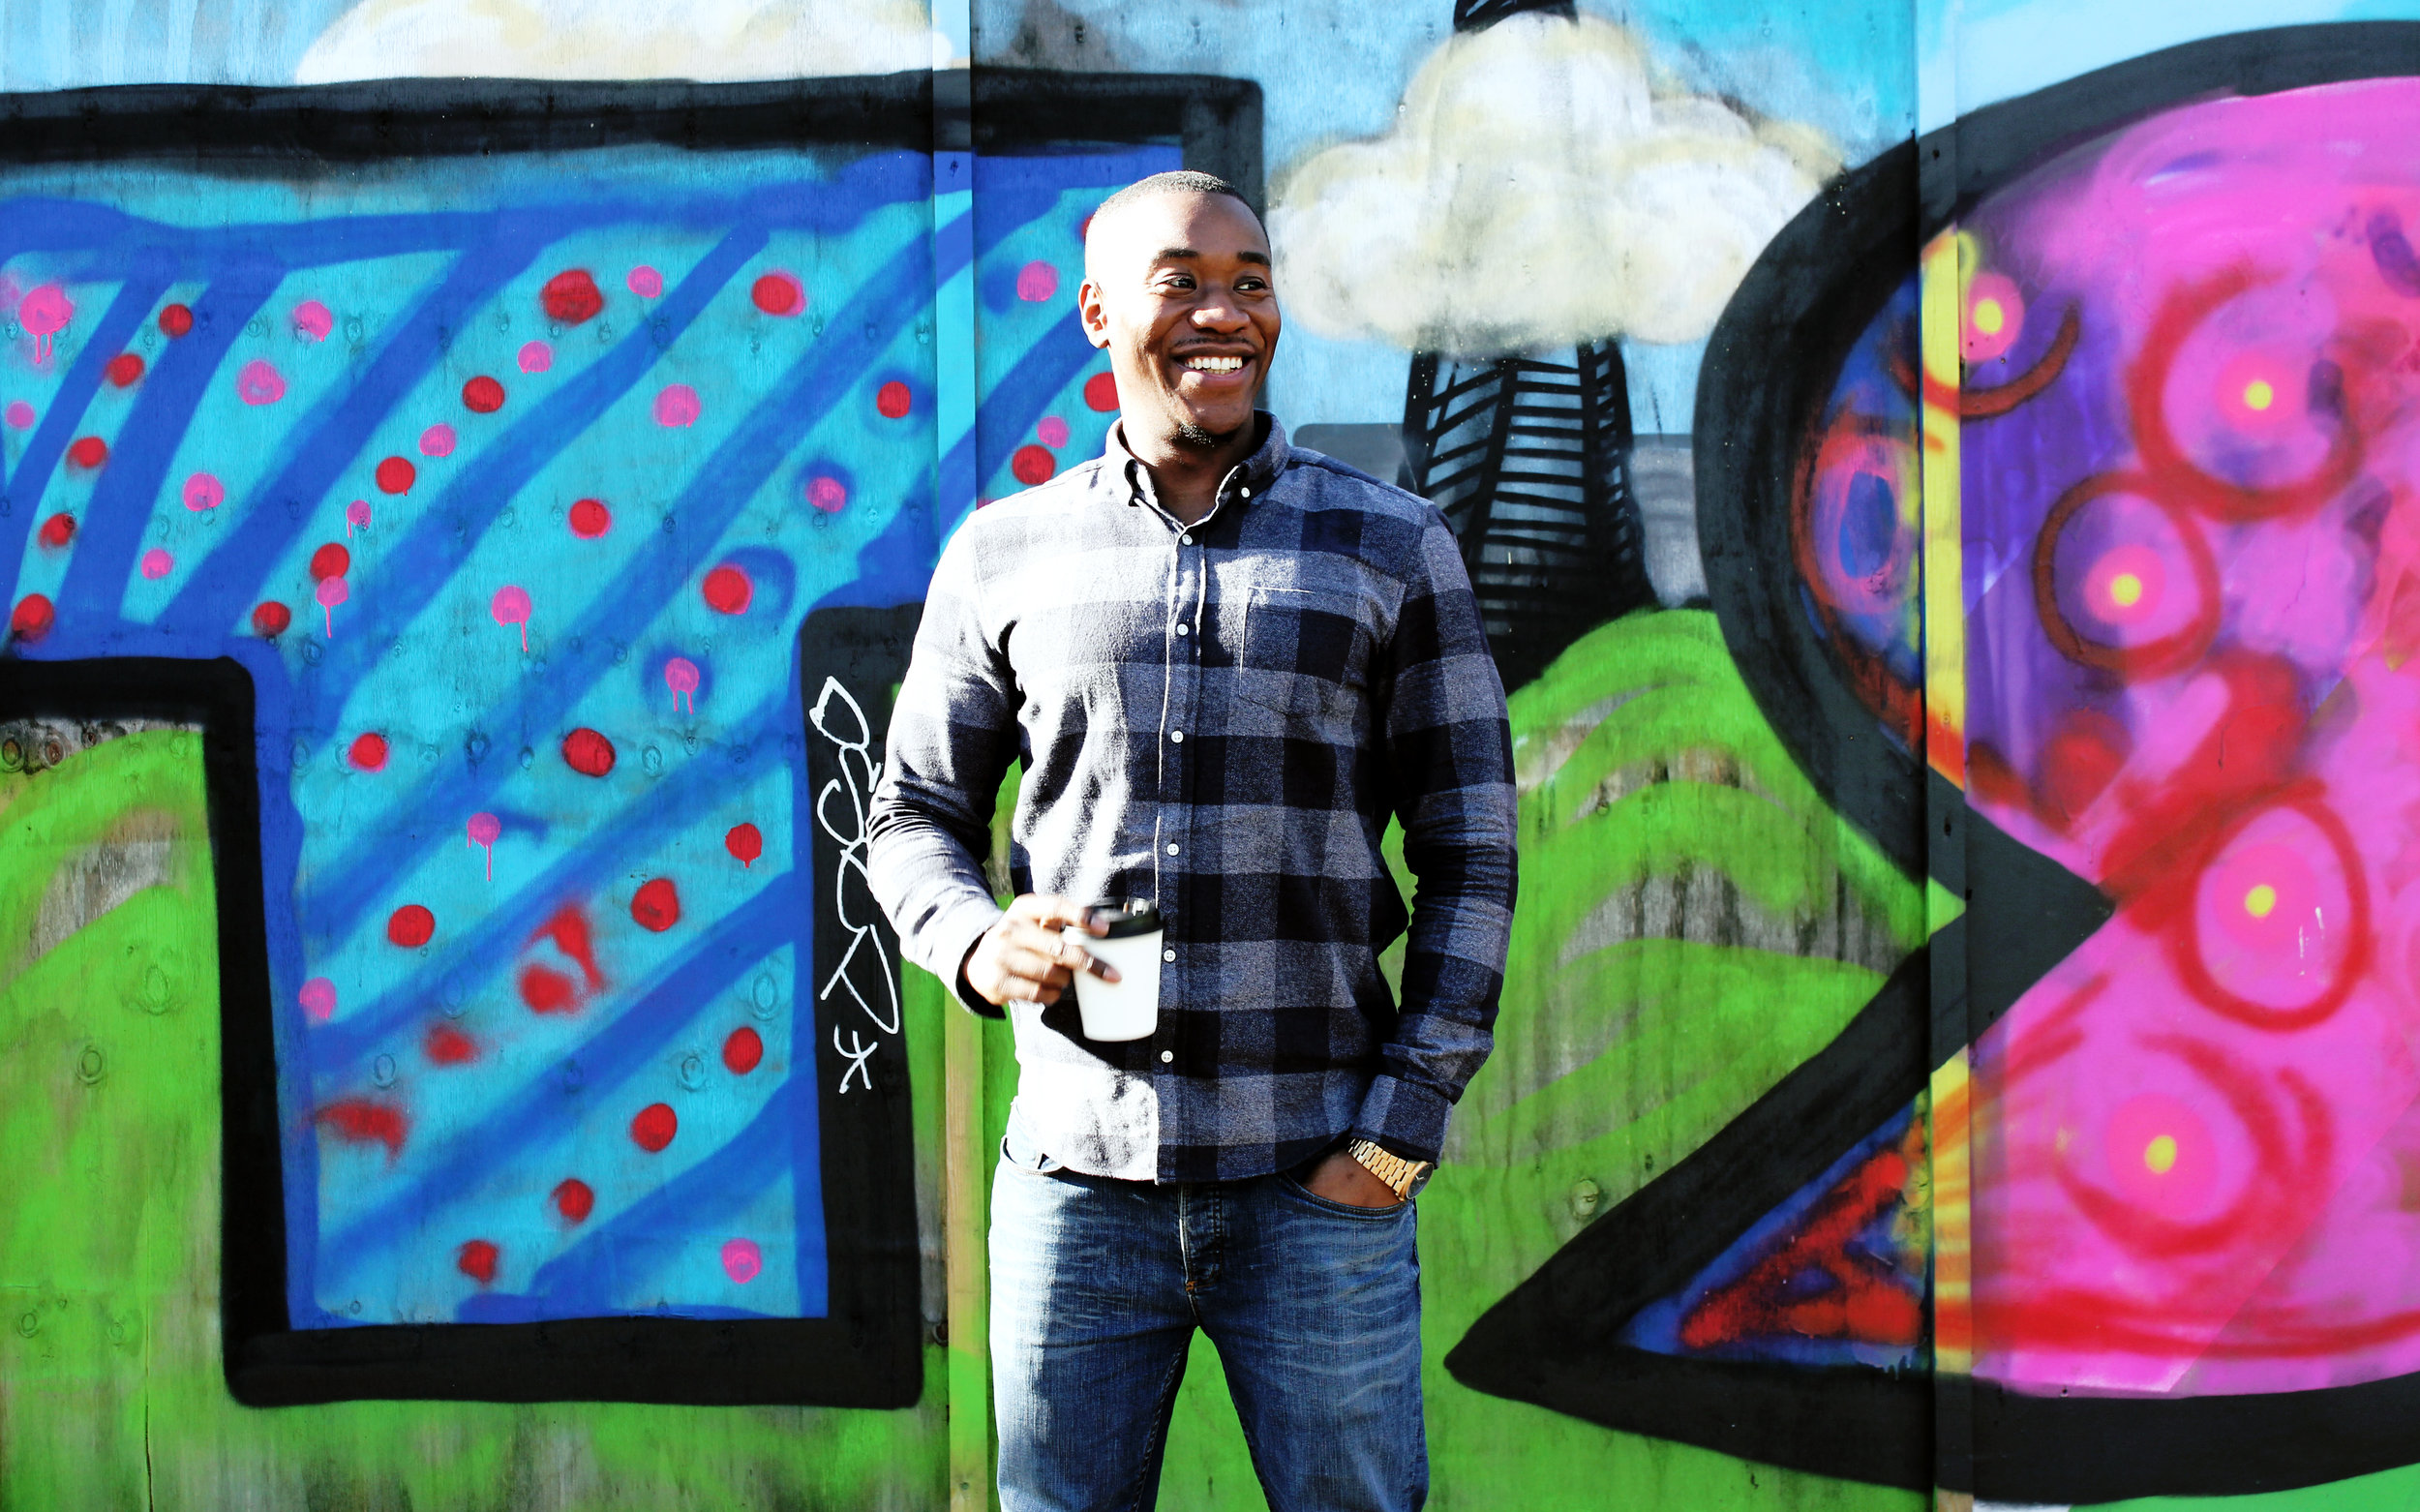 jamal blades - Business Development Manager Adventurous and always up for a challenge, Jamal enjoys keeping fit and being outdoors. He has also recently completed a successful climb of Mount Kilimanjaro. His love of coffee is matched by his passion and commitment to understanding clients' business needs and the challenges they face. His focus is on translating clients' needs into creative ideas that achieve outstanding results.